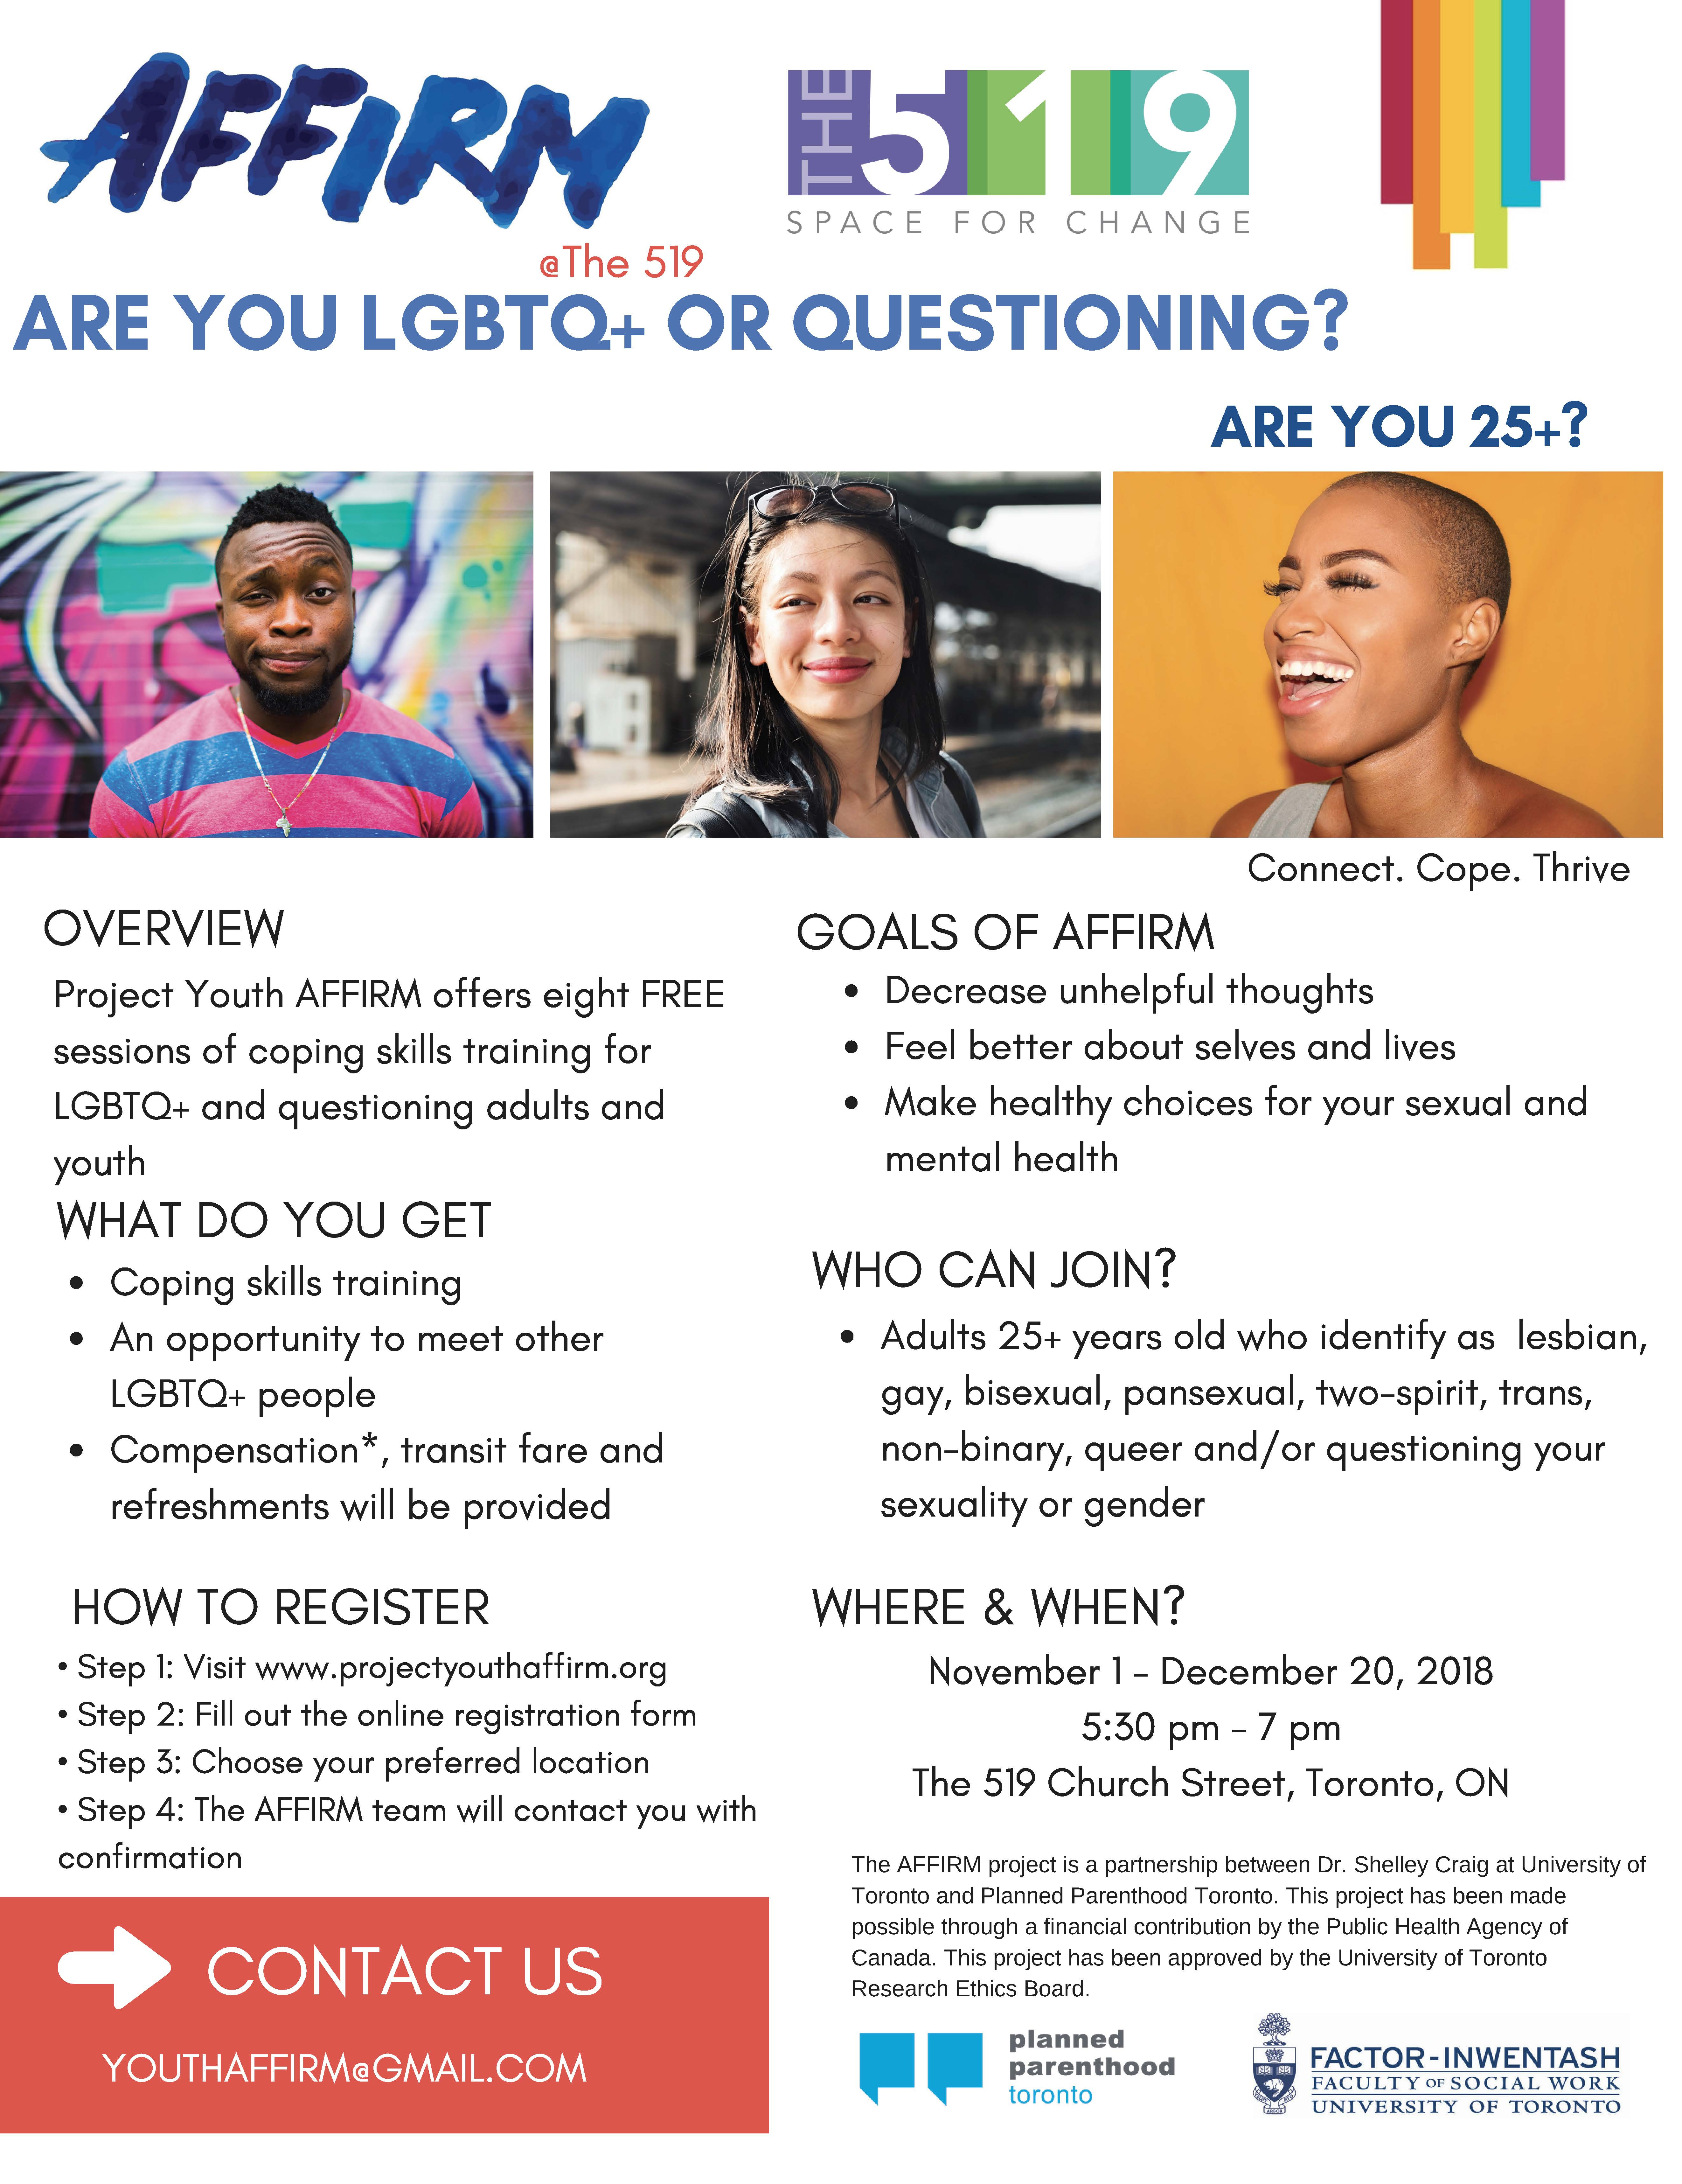 AFFIRM poster - join if you are 25+ LGBTQ2S identified person. November 1 - December 20, 2018 5:30 pm - 7 pm The 519 Church Street, Toronto, ON